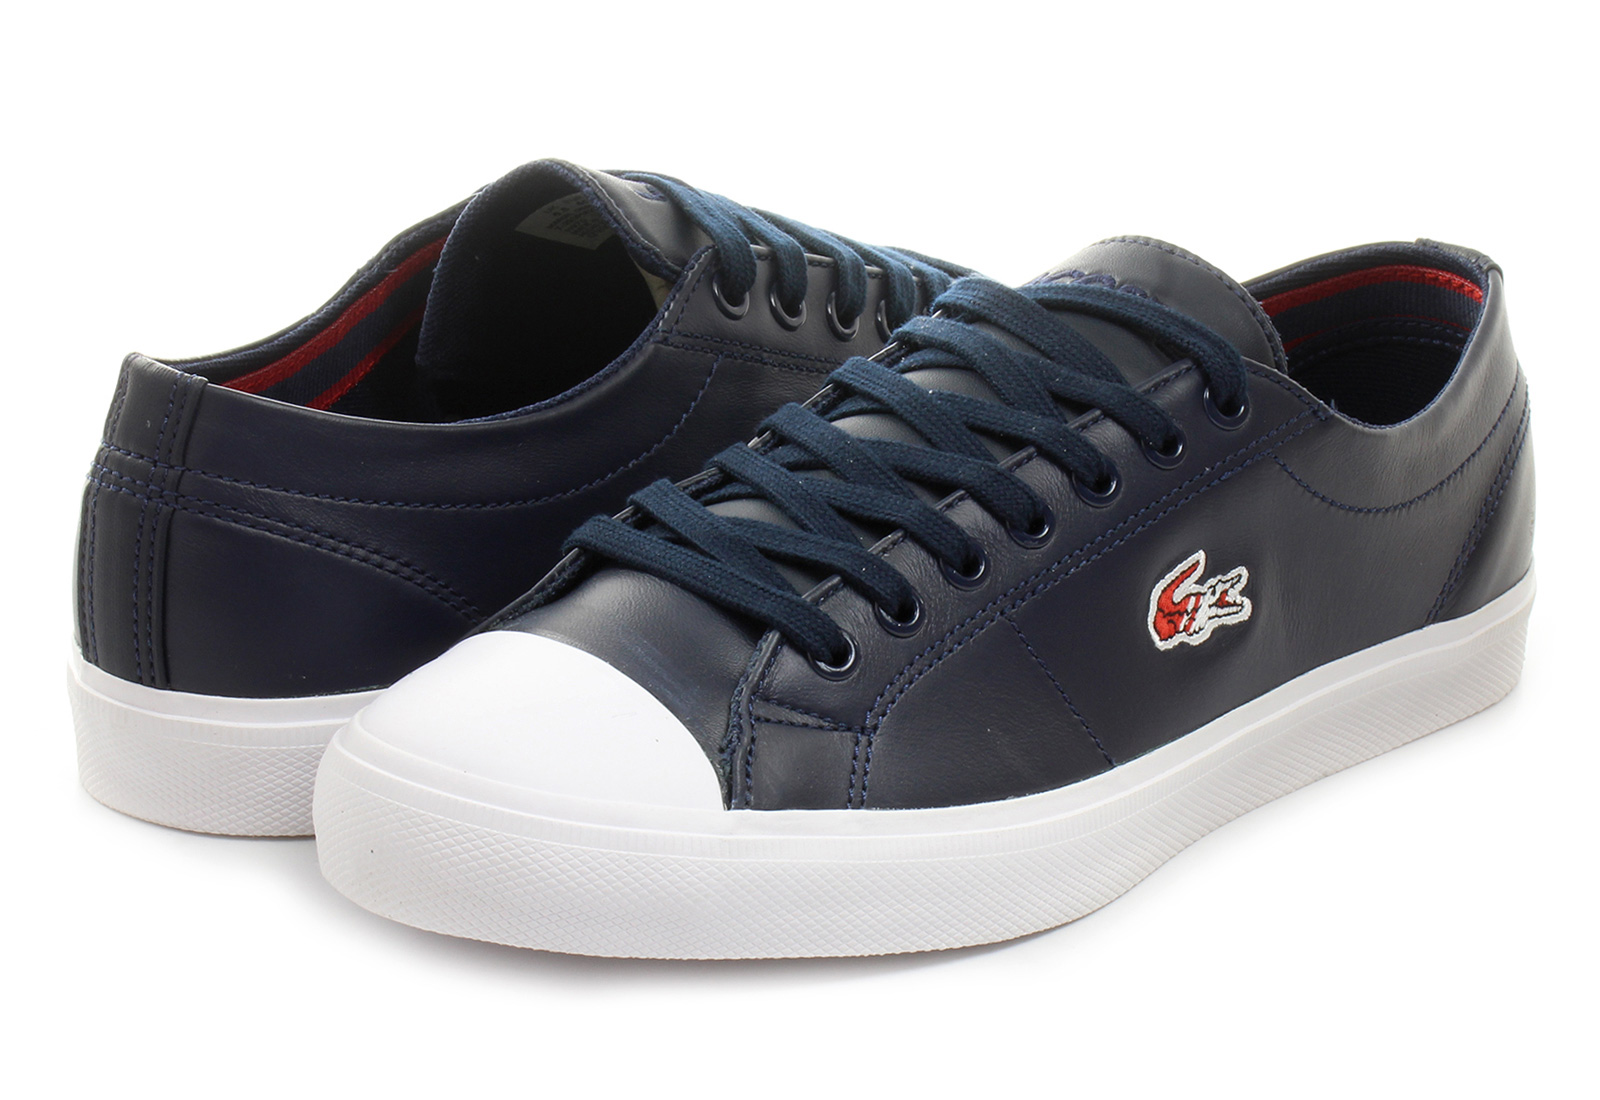 2552e1405209 Lacoste Cipő - Marcel Chunky Leather - 152spm2025-1p4 - Office Shoes ...